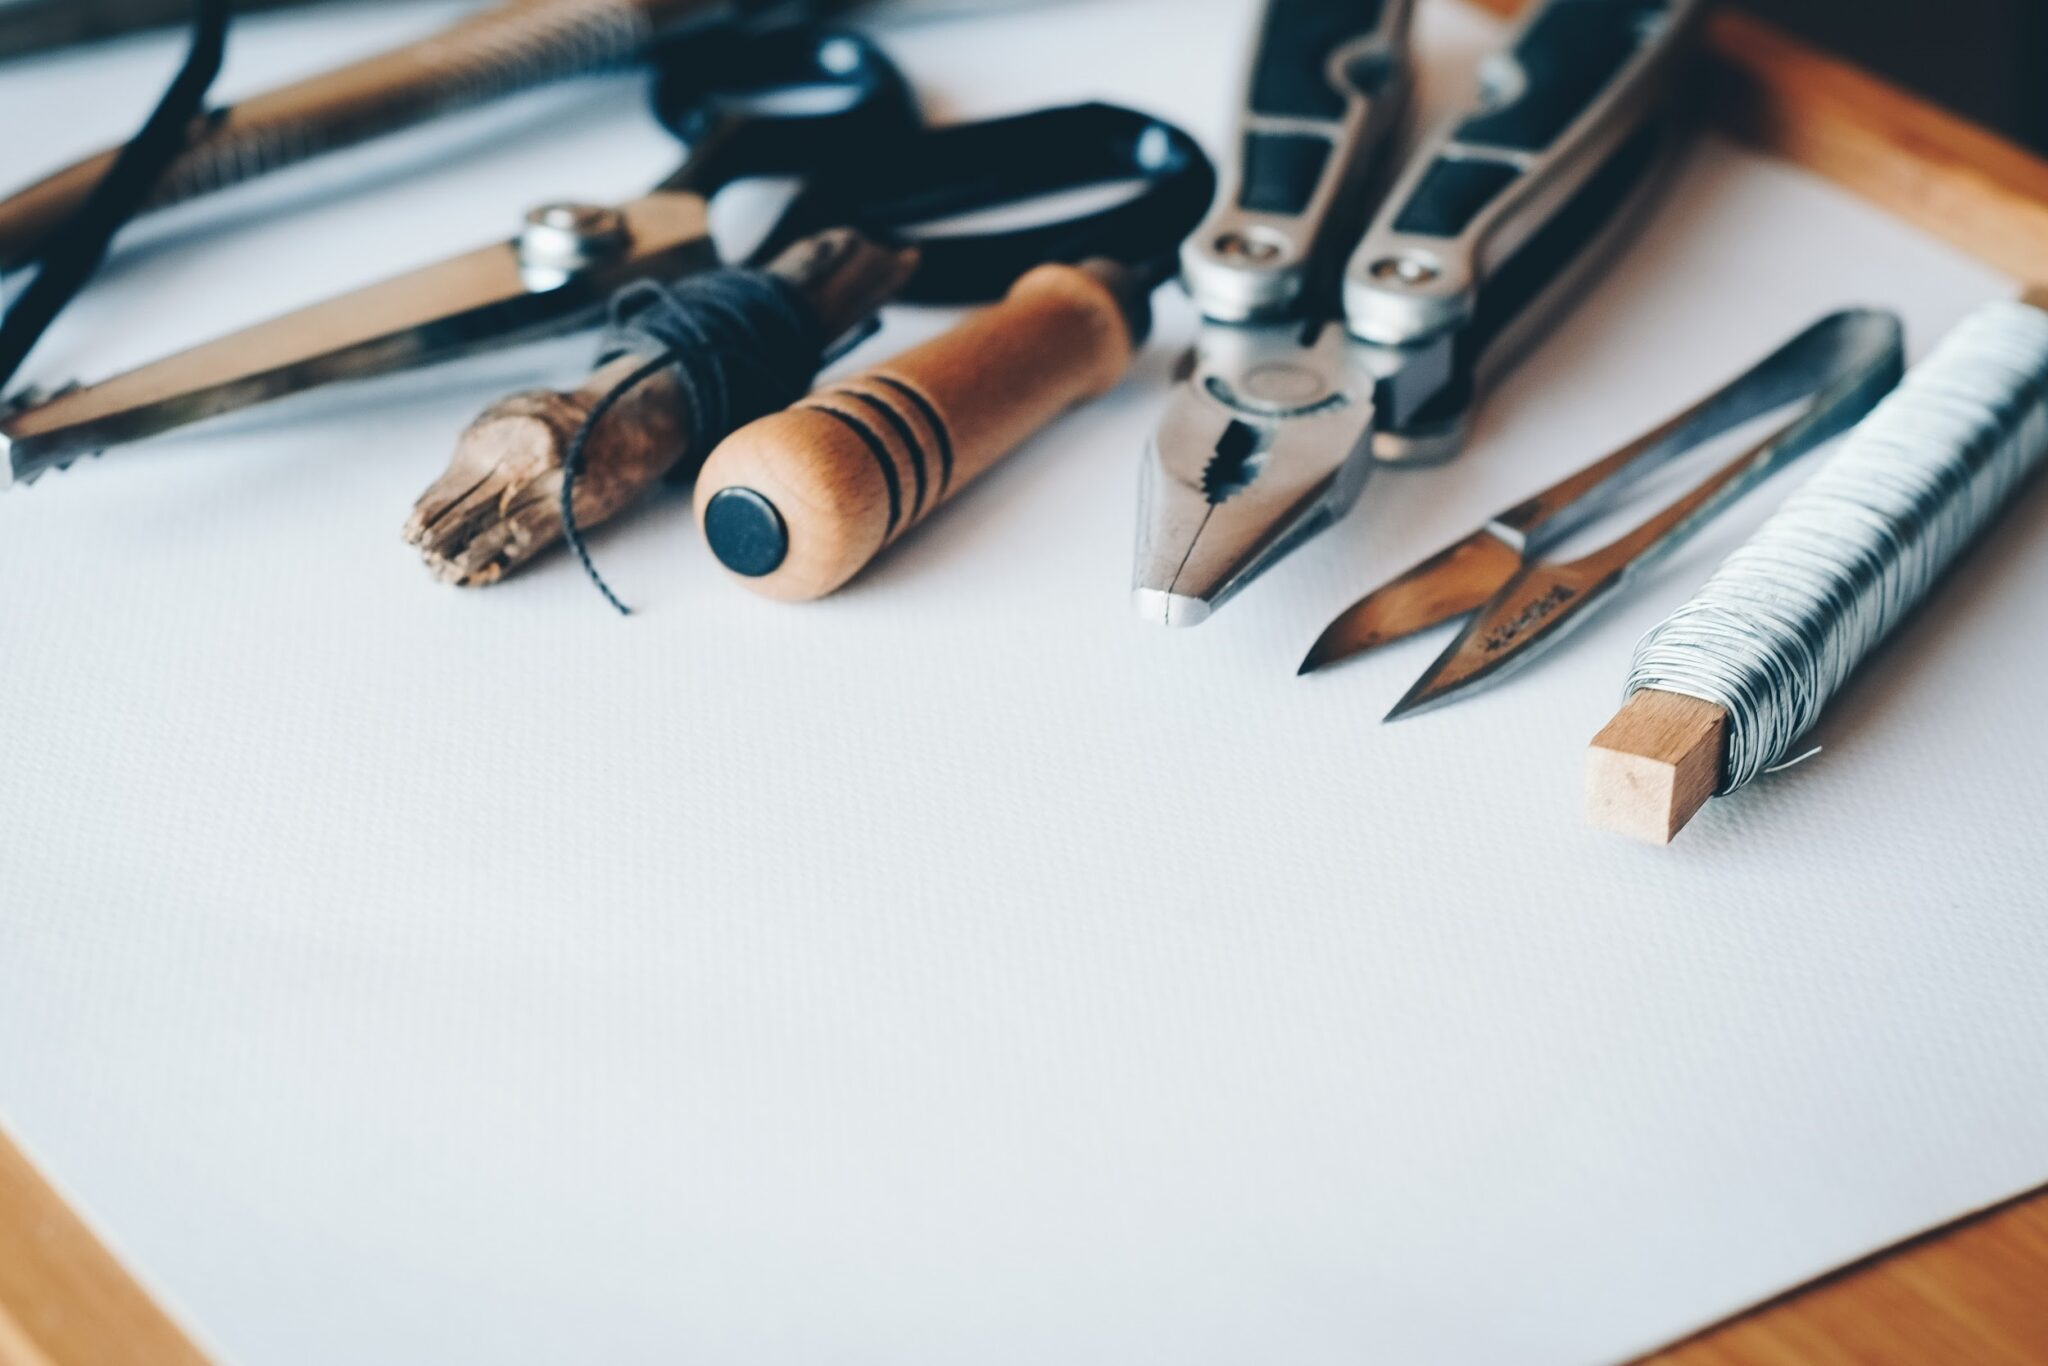 Finding the perfect tools and preparing for your next DIY Project